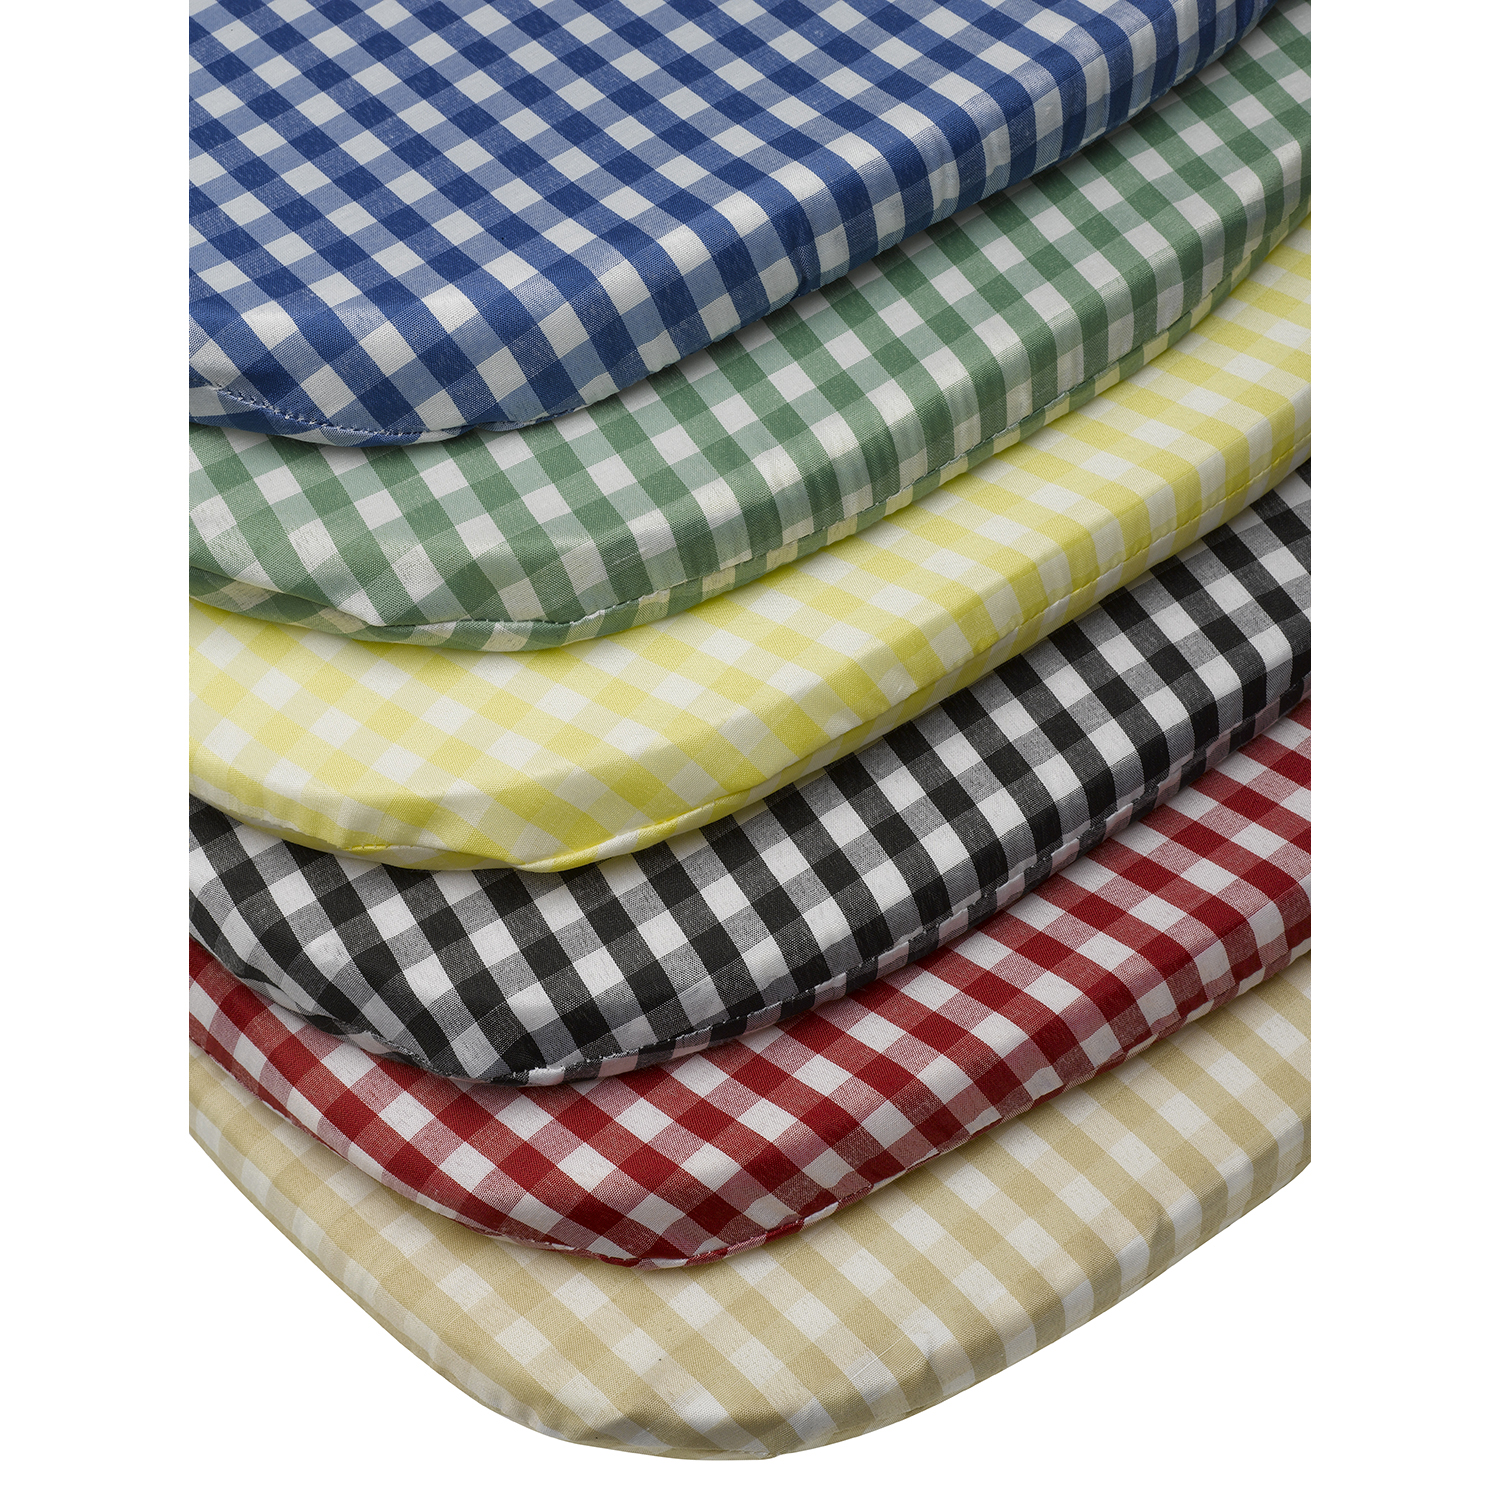 These traditional gingham check rounded seat pads are ideal for garden   kitchen or dining room chairs  providing an added layer of comfort Gingham Check Tie On Seat Pad 16  x 16  Kitchen Outdoor Dining  . Round Seat Cushions For Dining Room Chairs. Home Design Ideas